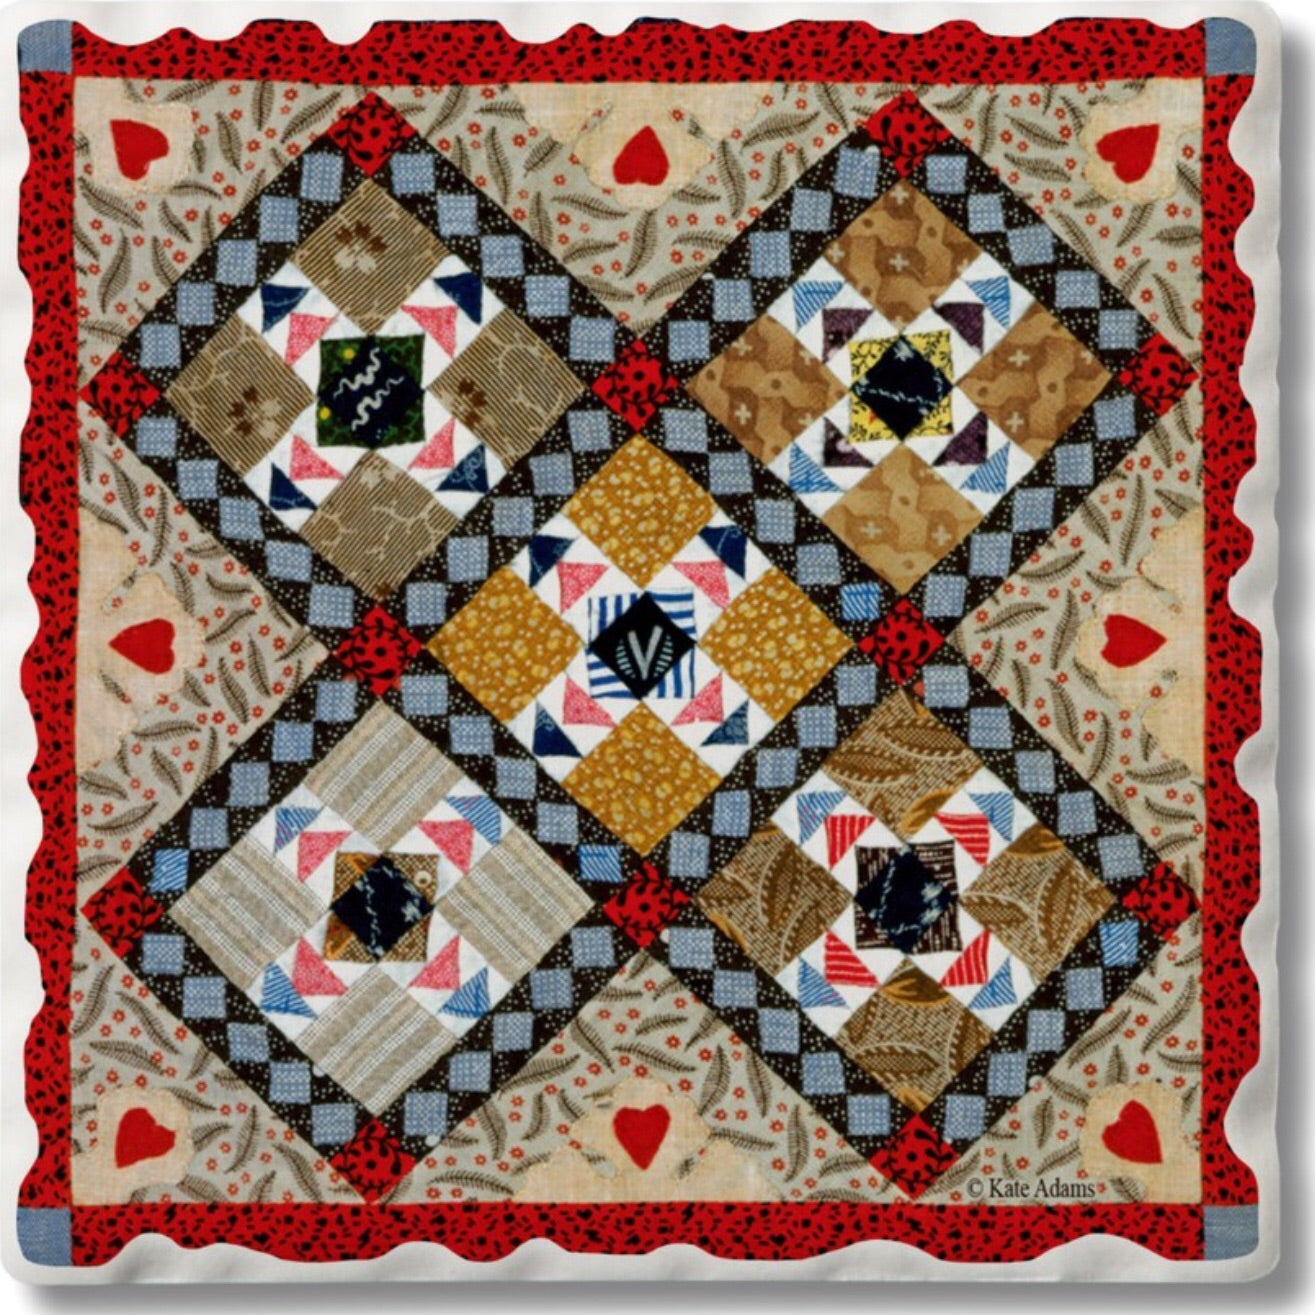 Absorbent Stone Coaster - Quilt 12